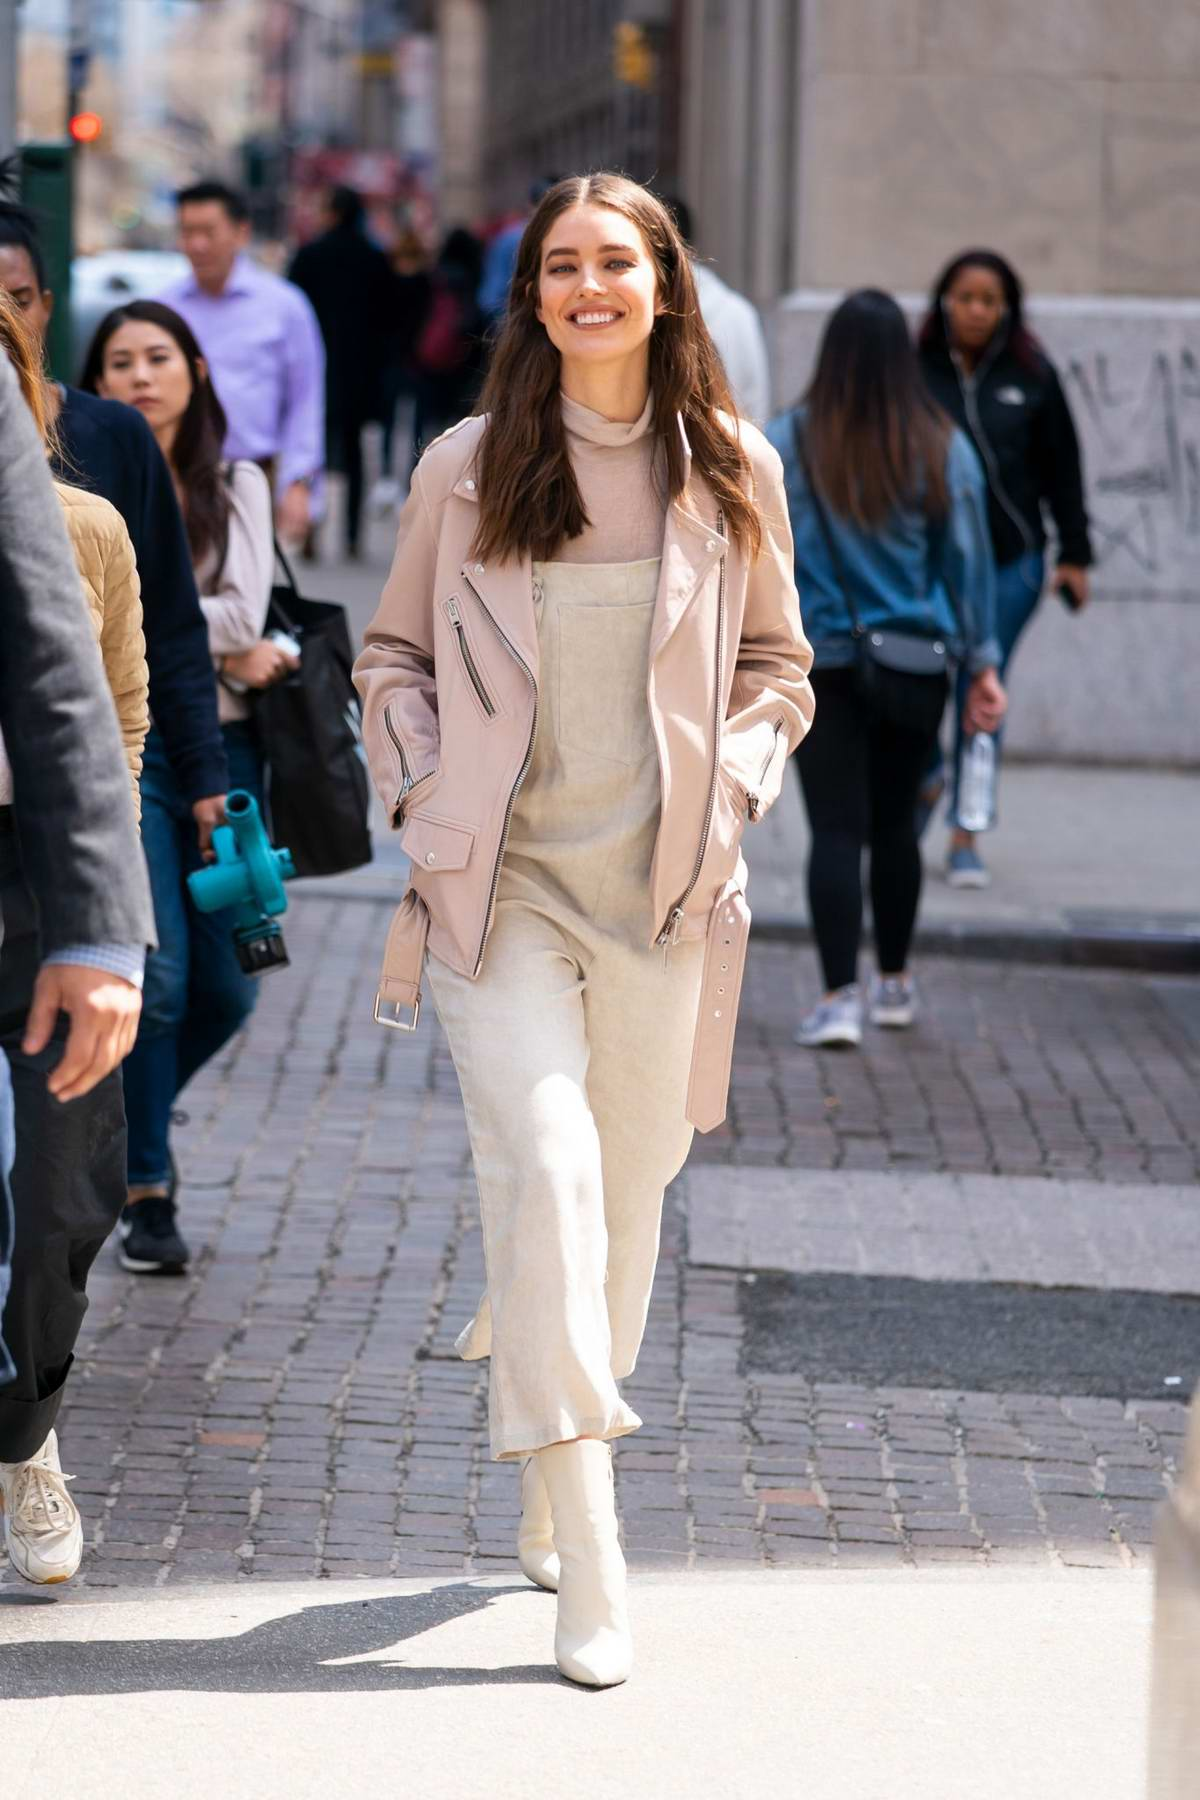 Emily DiDonato keeps it trendy with a smile as she steps out in Soho, New York City